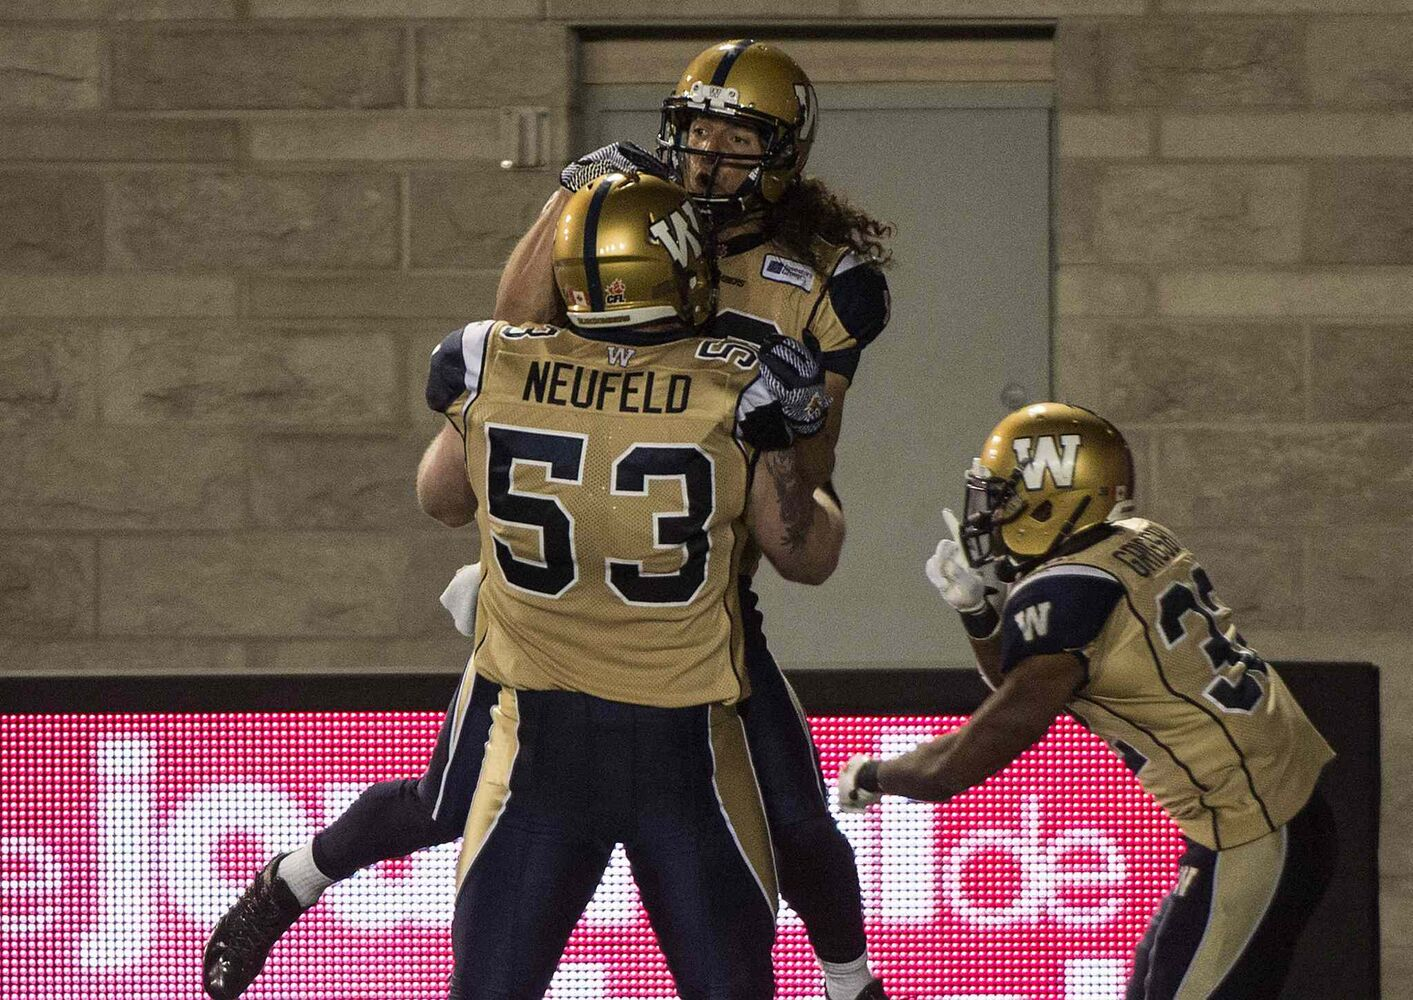 Winnipeg Blue Bombers' wide receiver Julian Feoli-Gudino leaps into the arms of teammate Patrick Neufeld after scoring a touchdown against the Montreal Alouettes in the final minutes of the fourth quarter Friday. The Blue Bombers beat the Alouettes 34-33.  (Paul Chiasson / The Canadian Press)